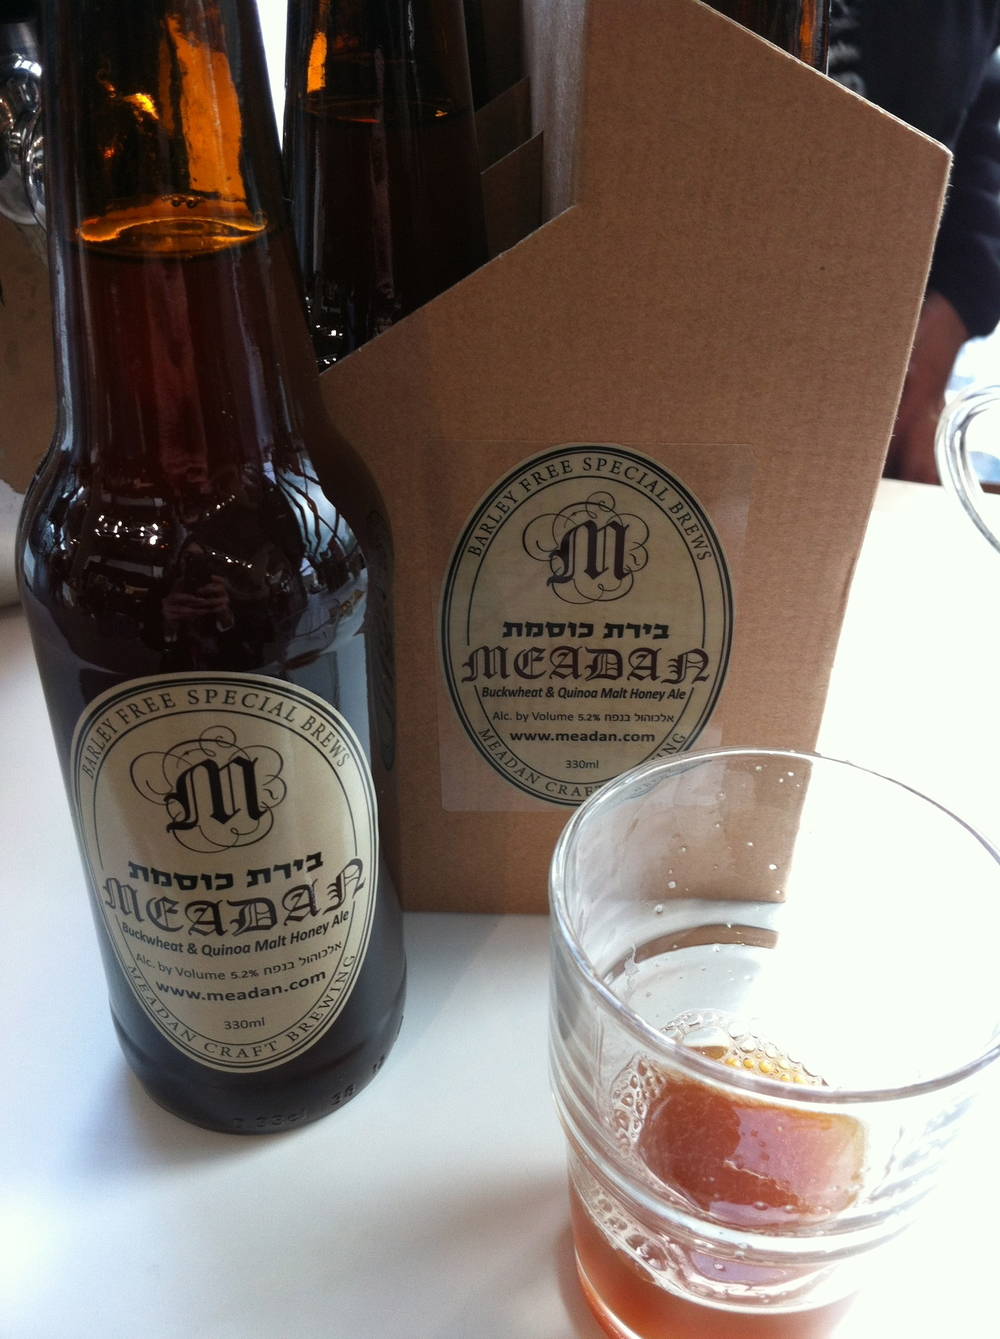 GLUTEN FREE BEER!! With buckwheat and quinoa - and GOOD!